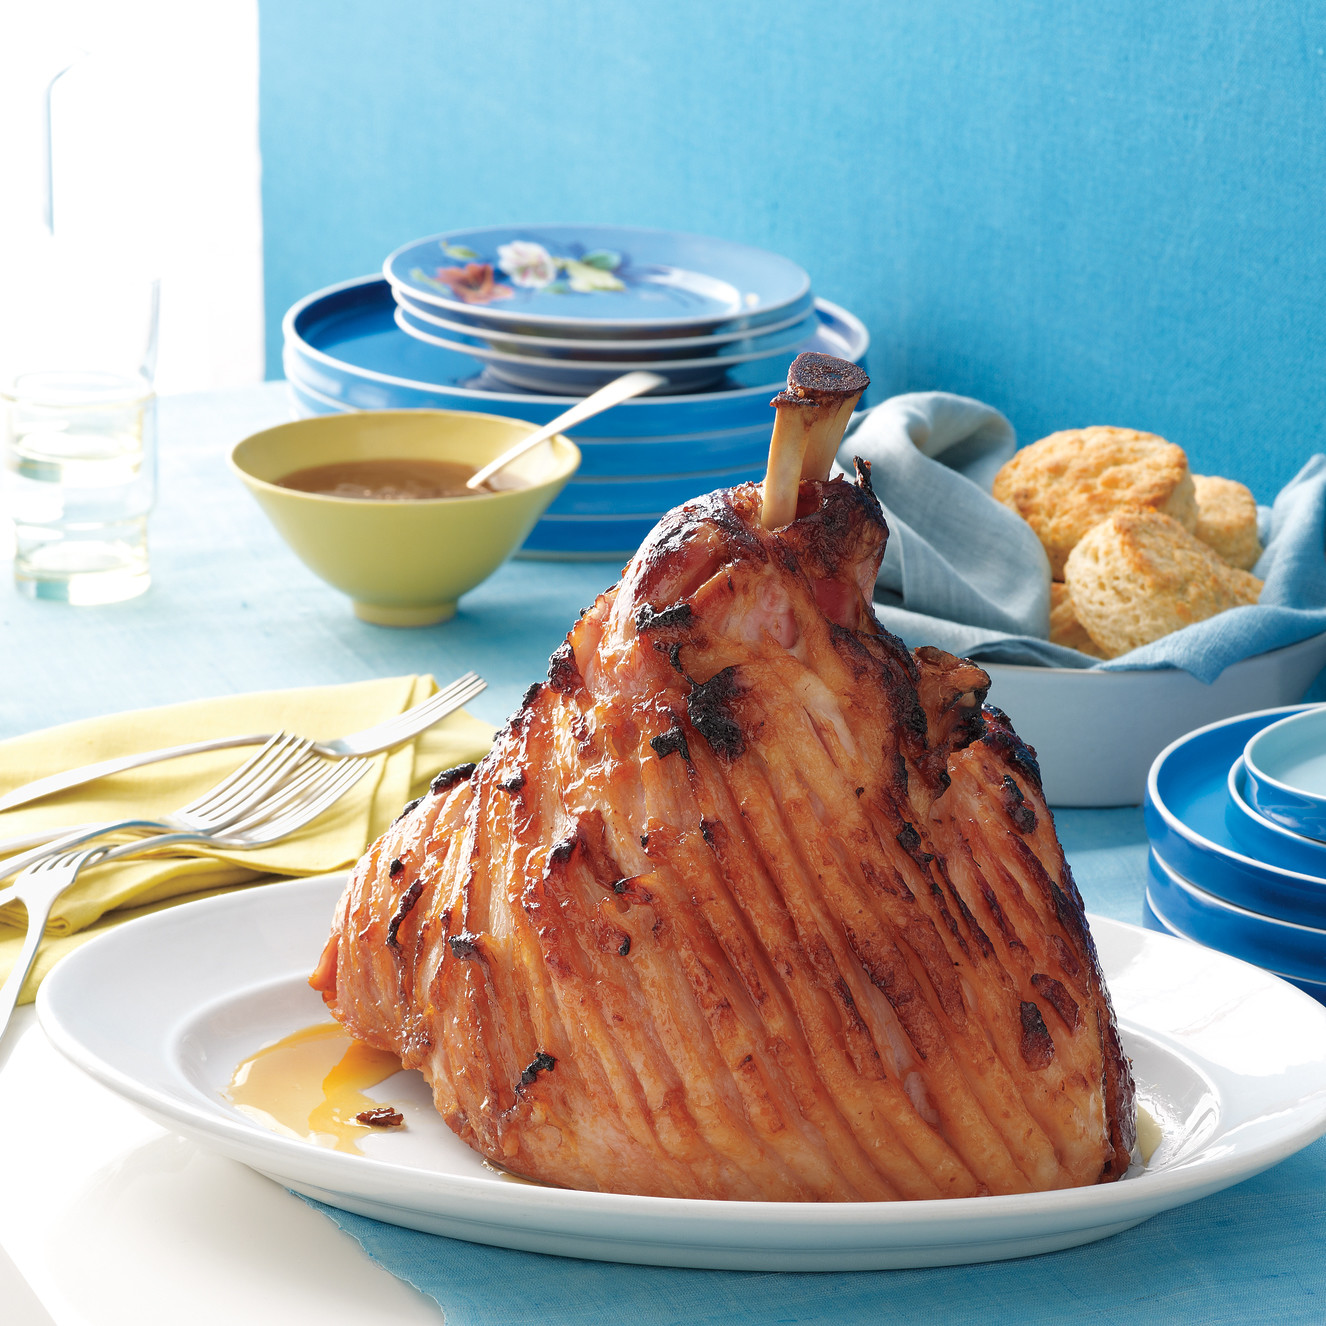 Easter recipes martha stewart delight your guests with ham and biscuits for easter dinner forumfinder Images